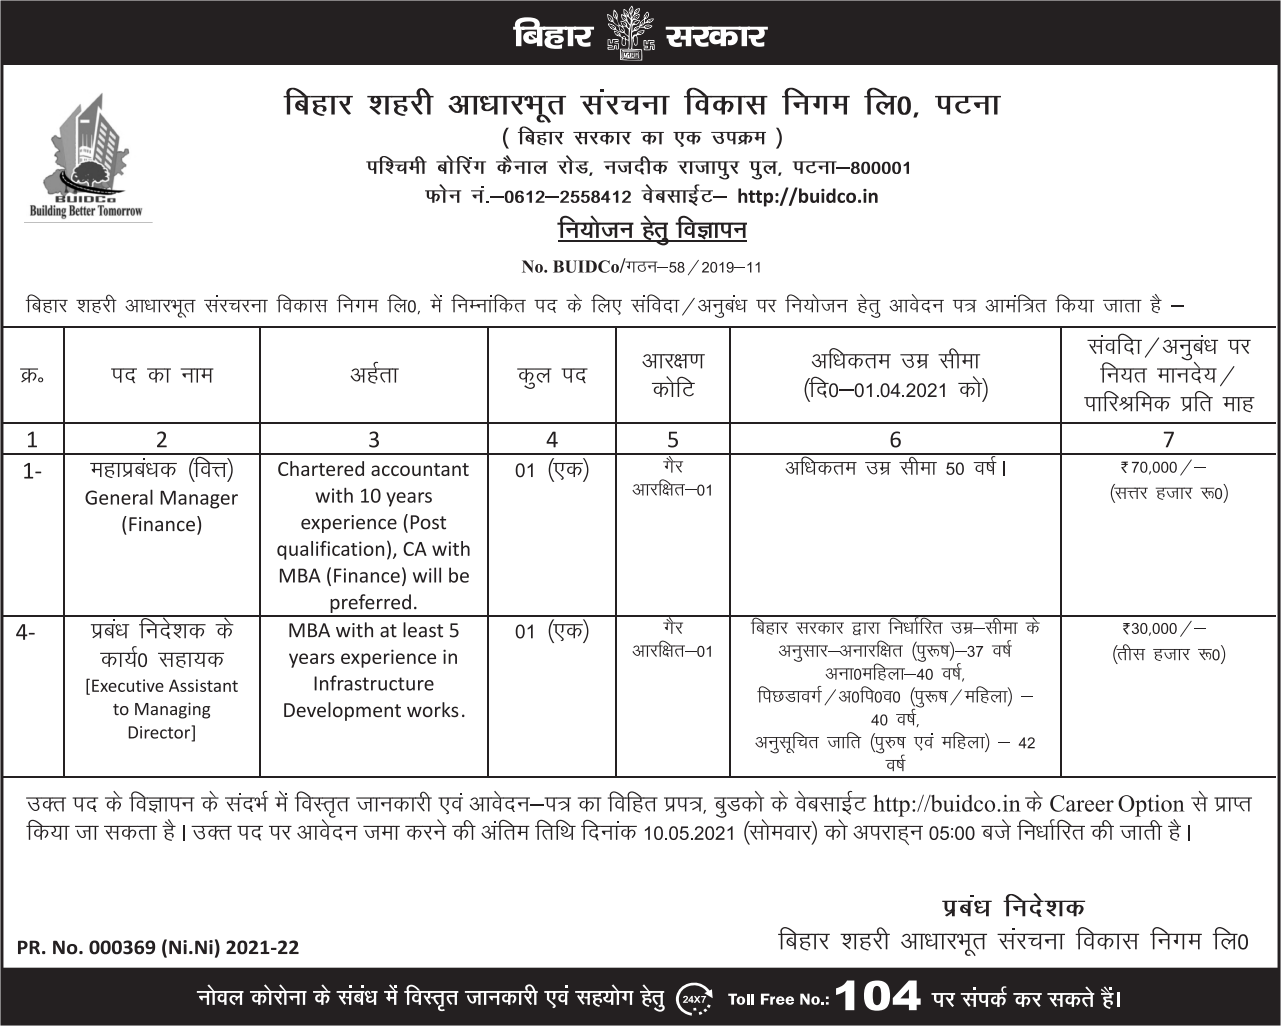 Recruitment post for General Manager (Finance) and EA to MD in BUIDCO